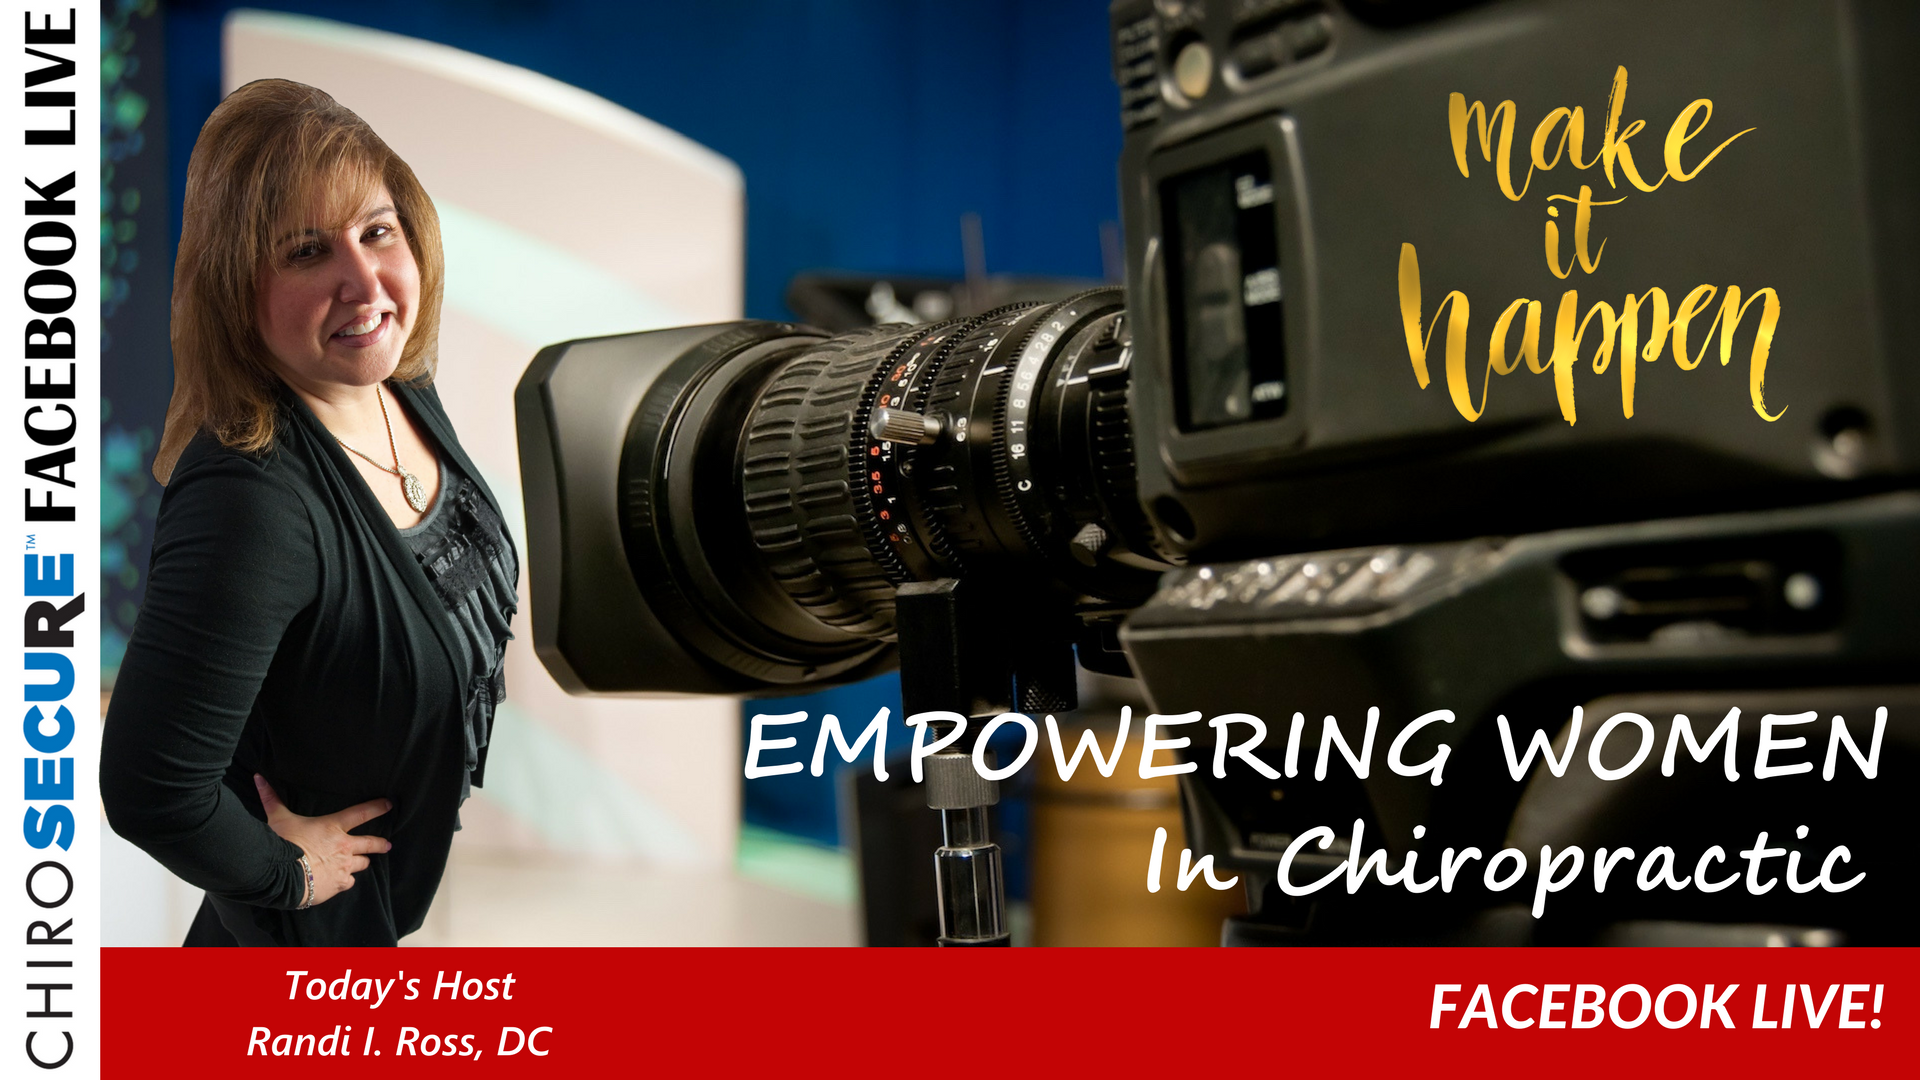 Dr. Randi Ross of Empowering Women